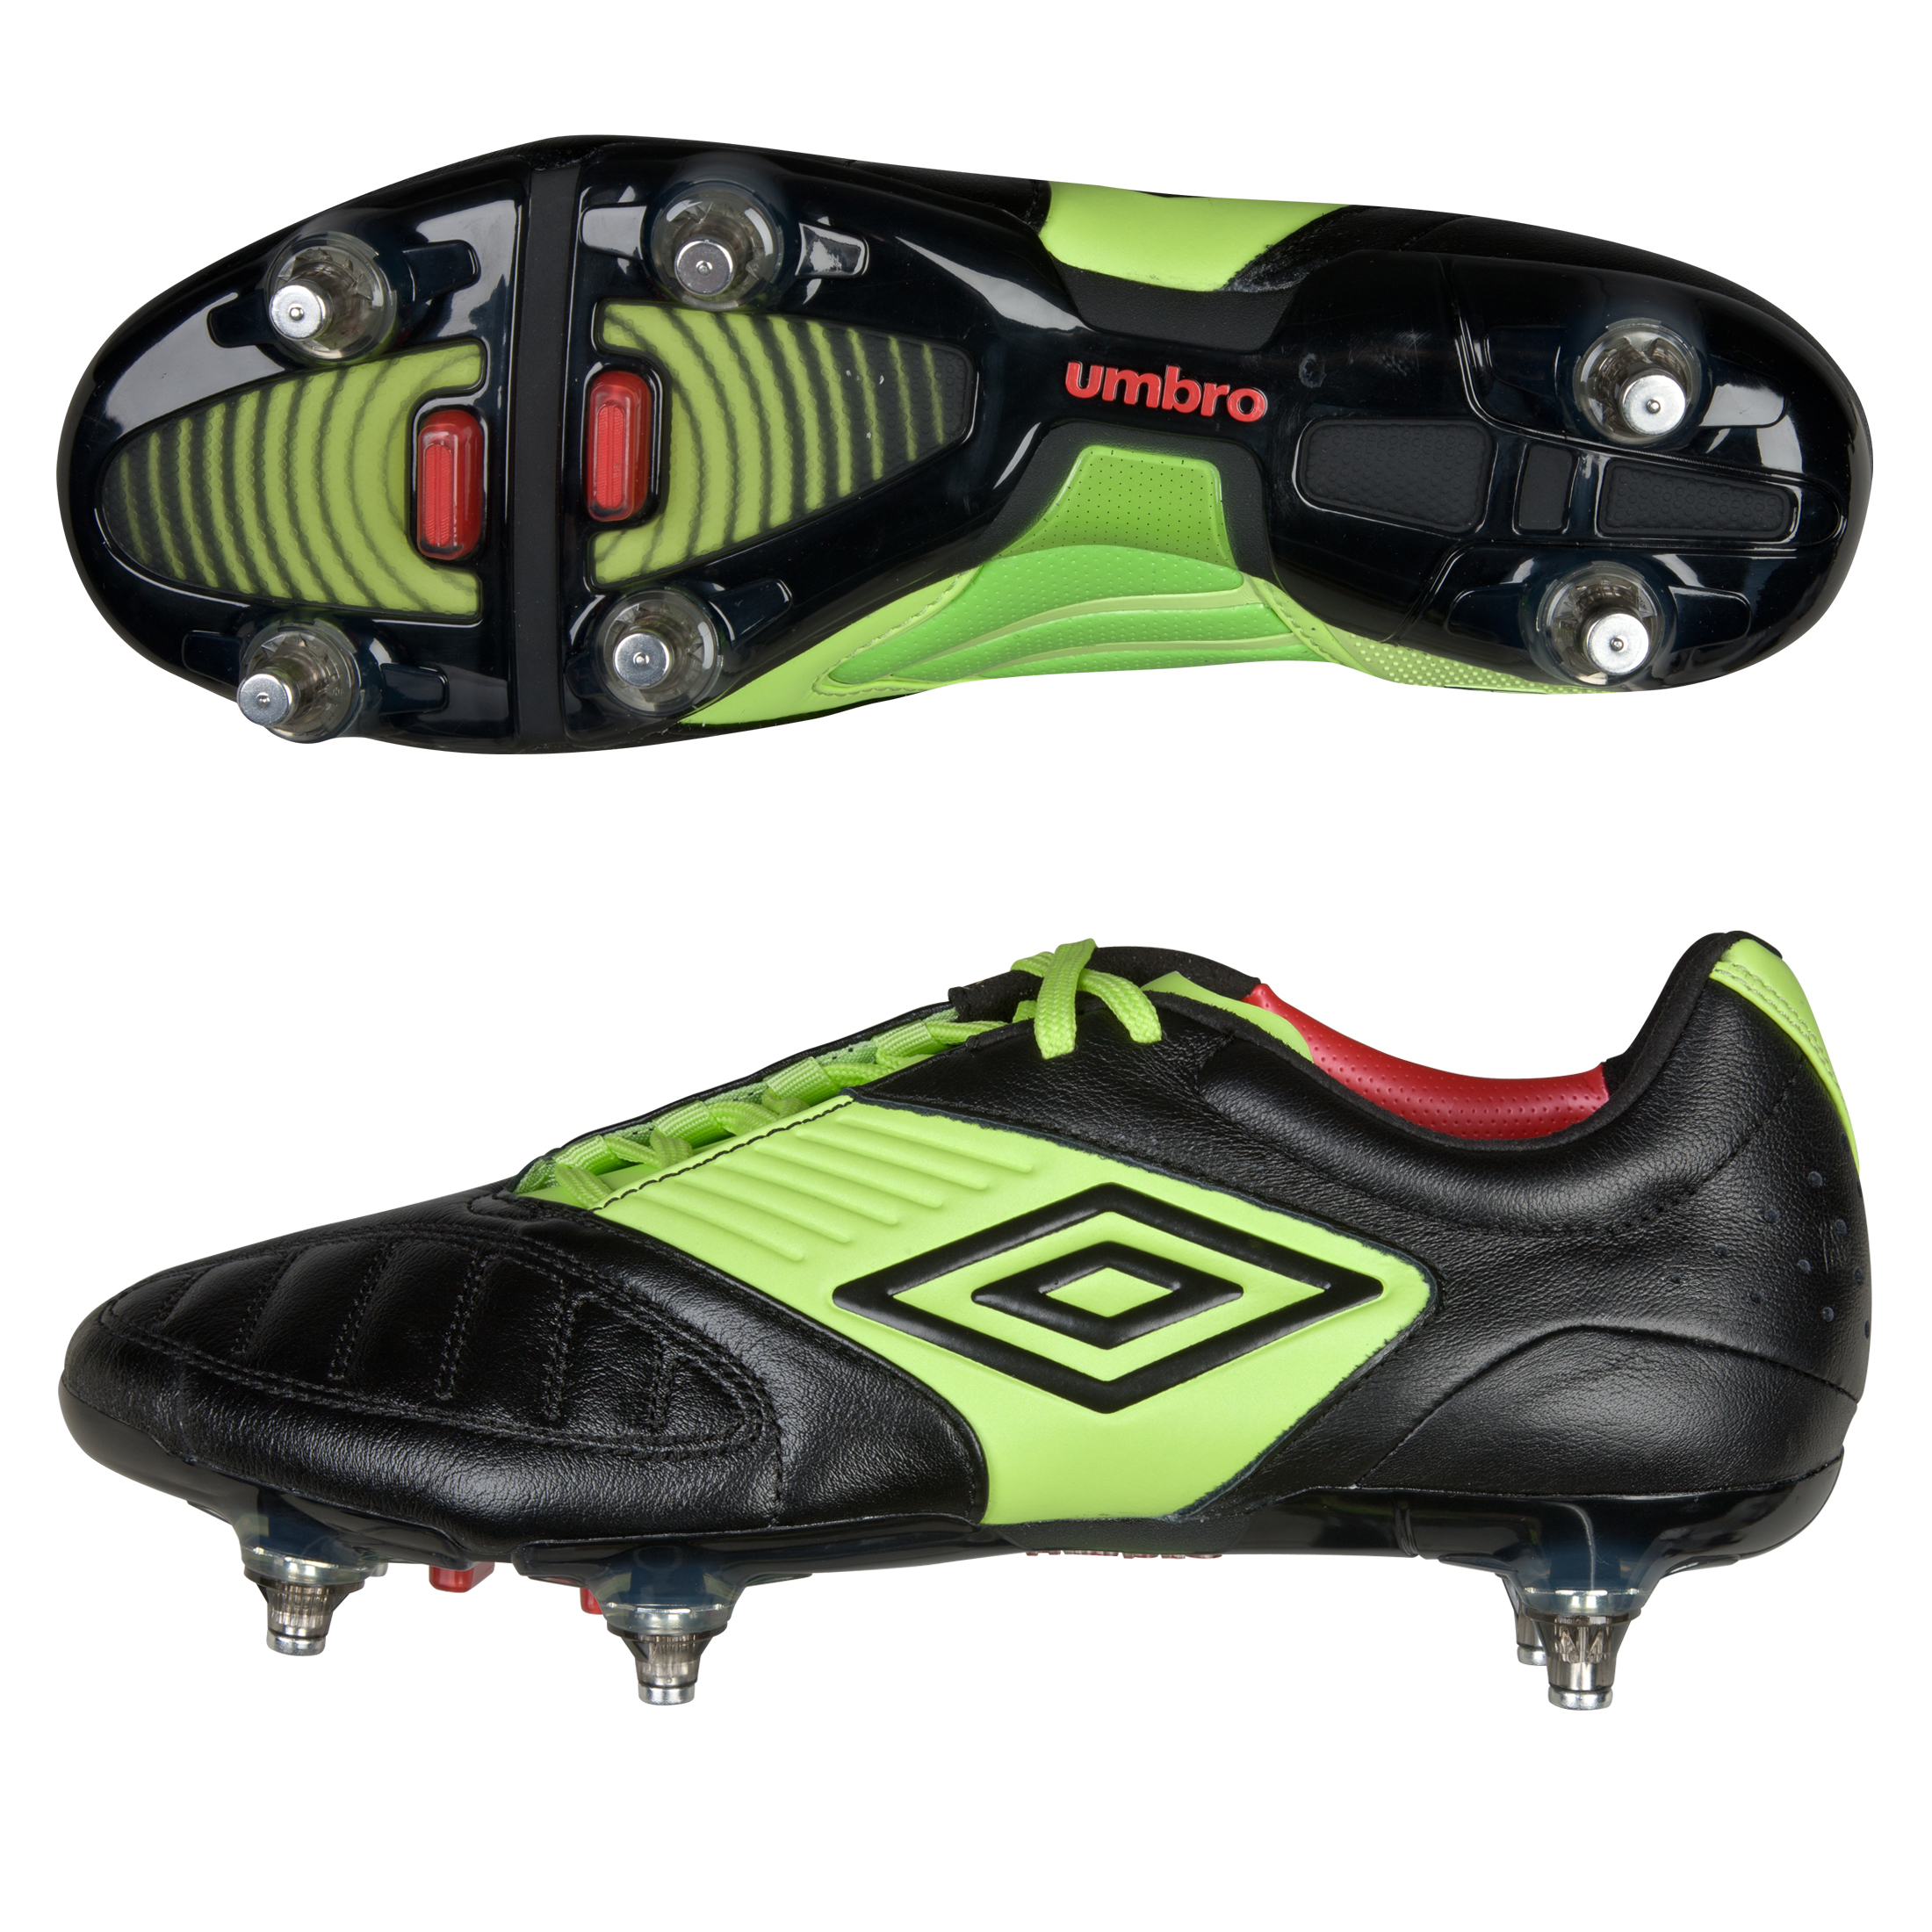 Umbro Geometra Pro Sg- Black/White/Sharp Green/True Red